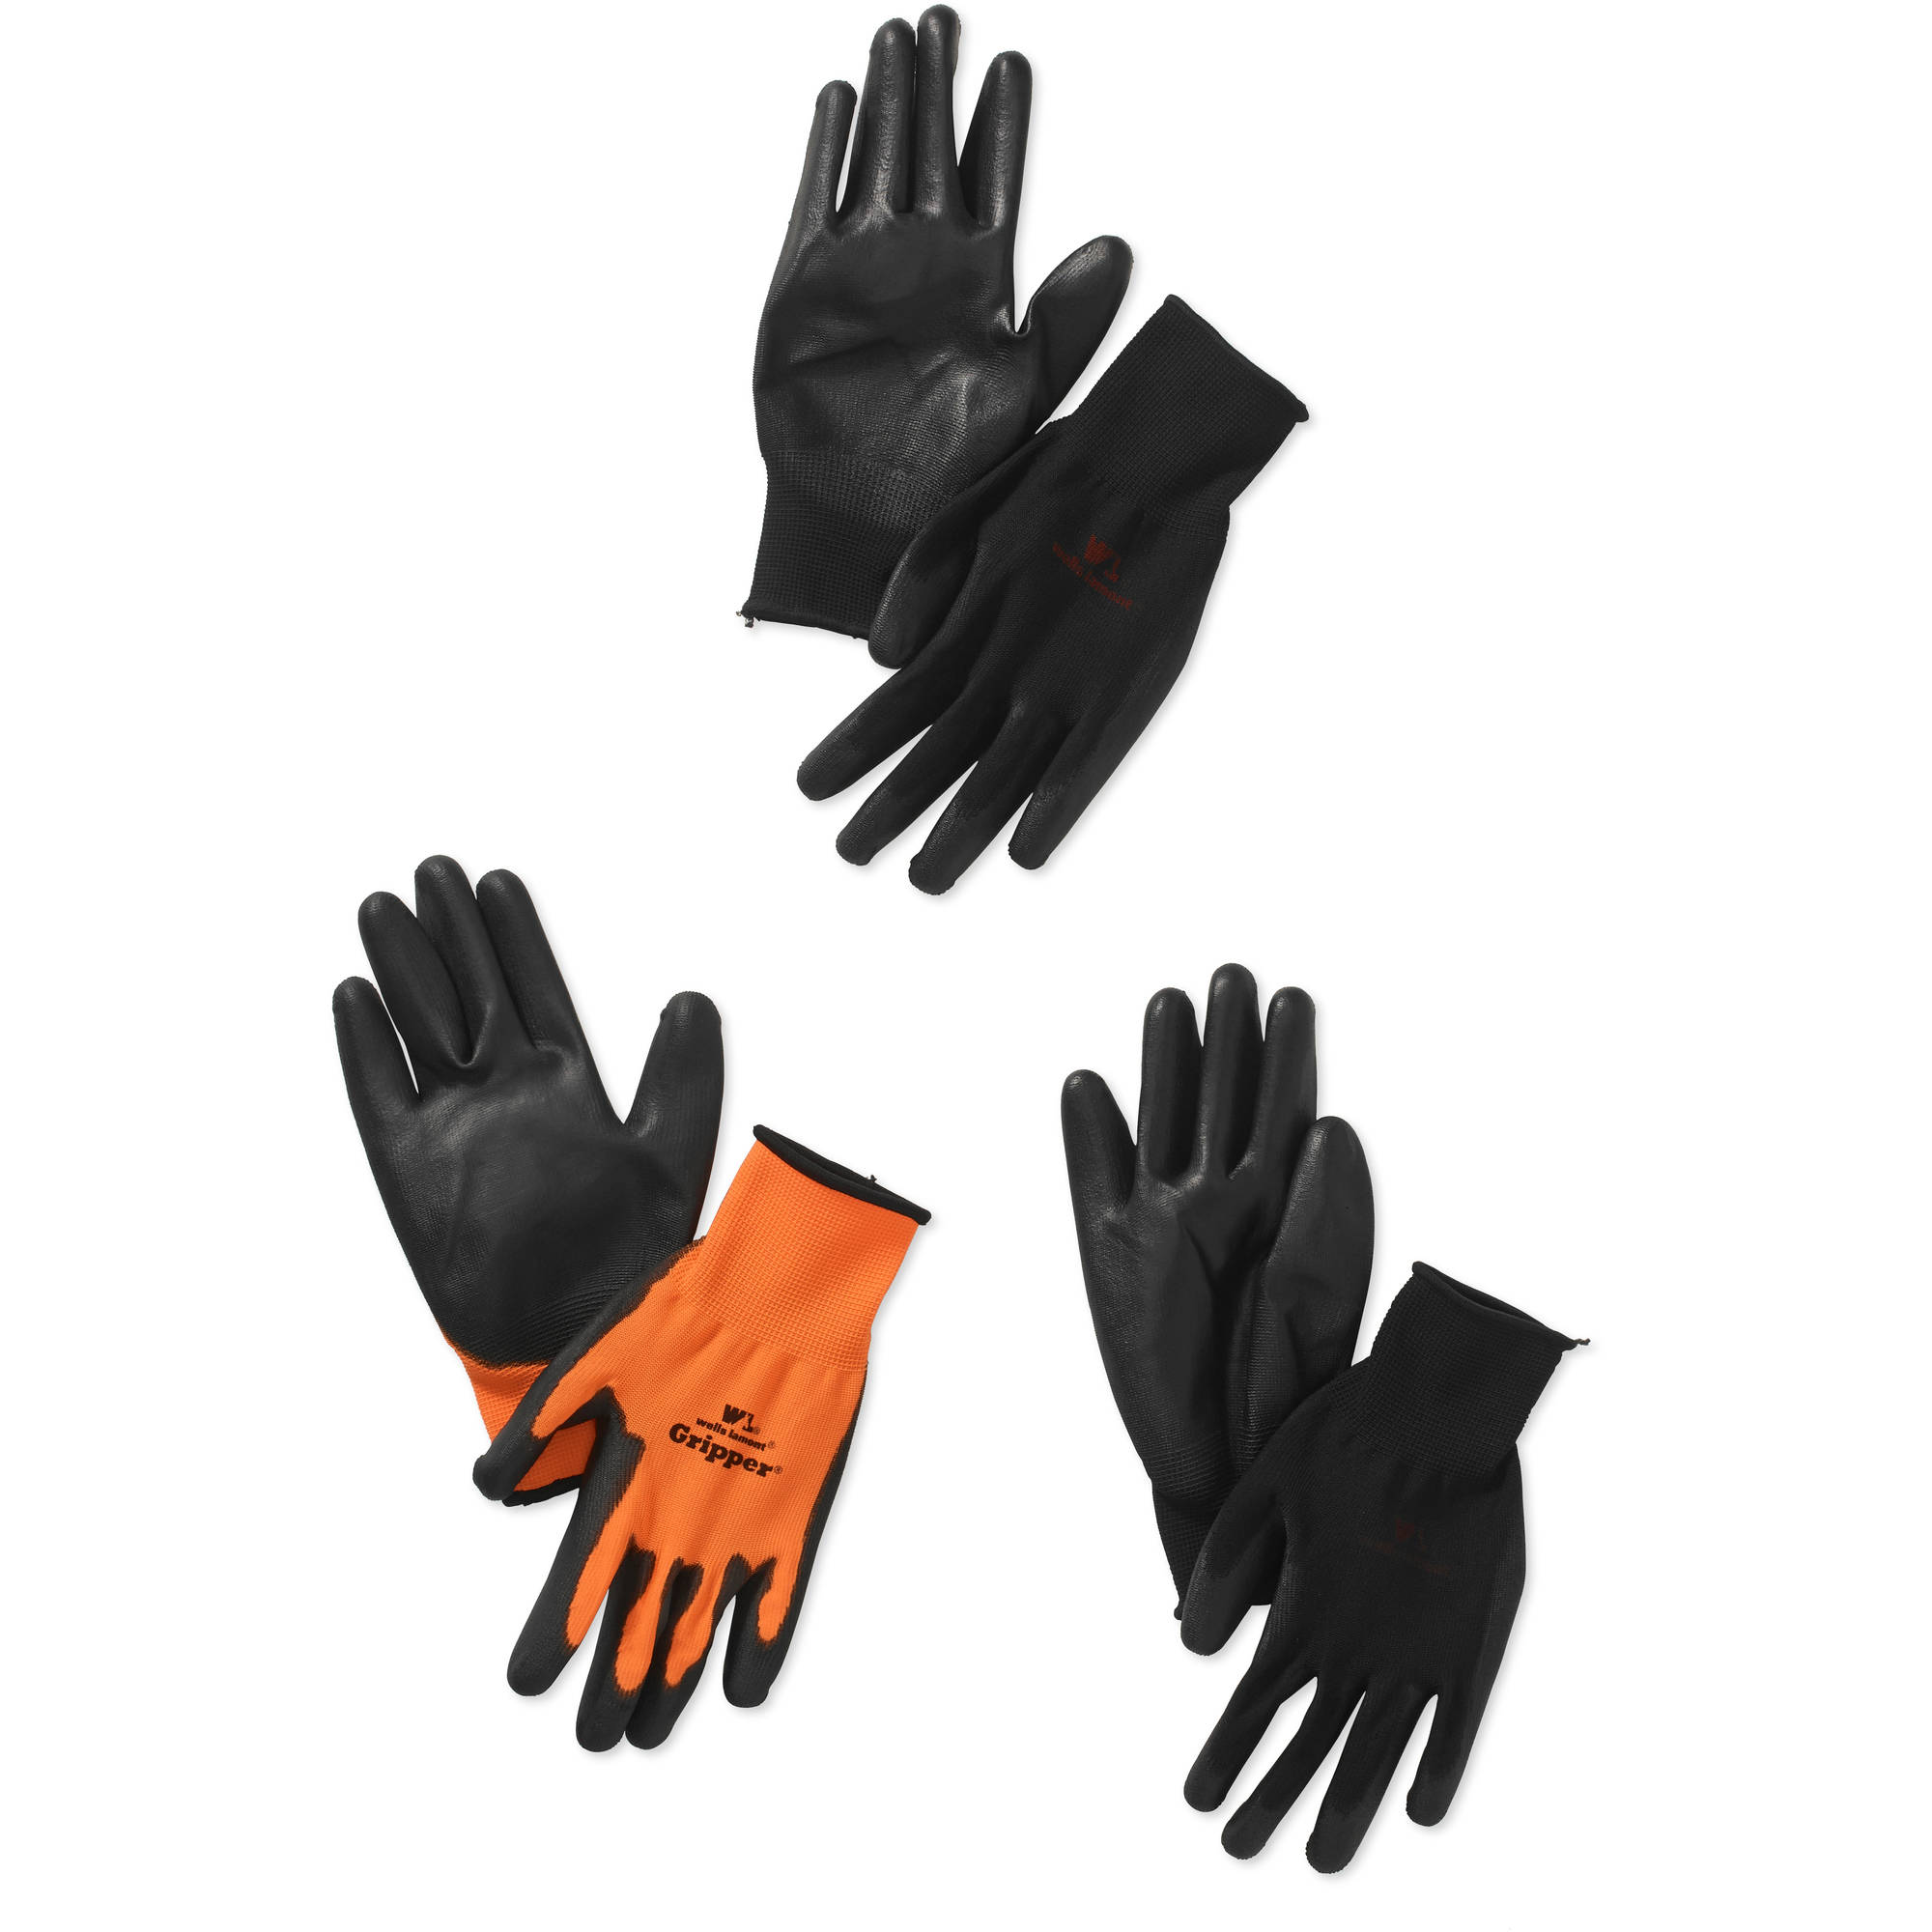 Wells Lamont 559LF The Gripper Work Gloves in Hi Viz Orange, PU-Coated, One Size Fits Most, 3-Pack